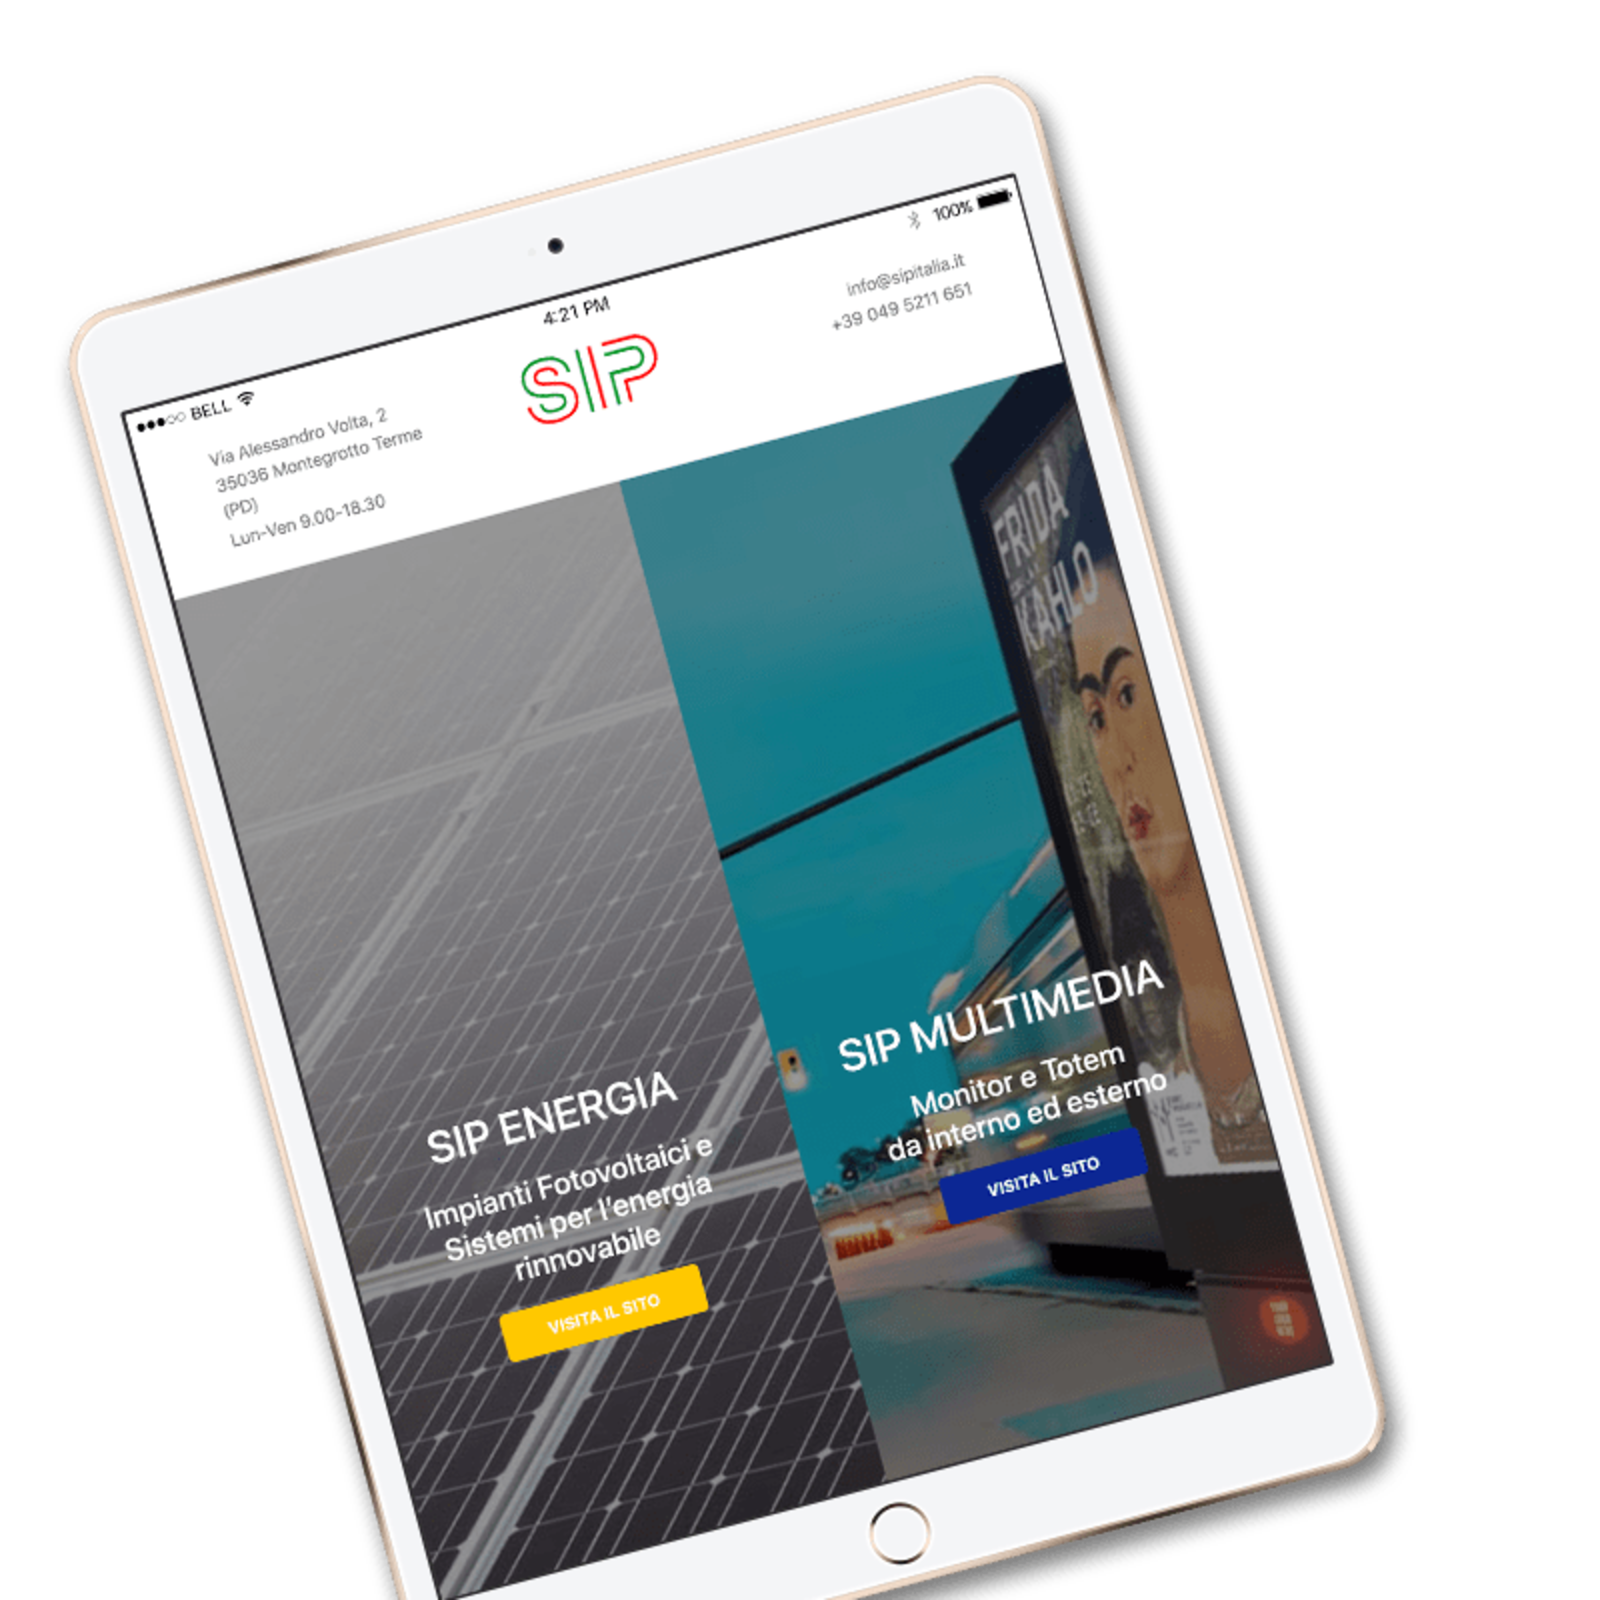 Mockup of an iPad as shown in the initial landing page